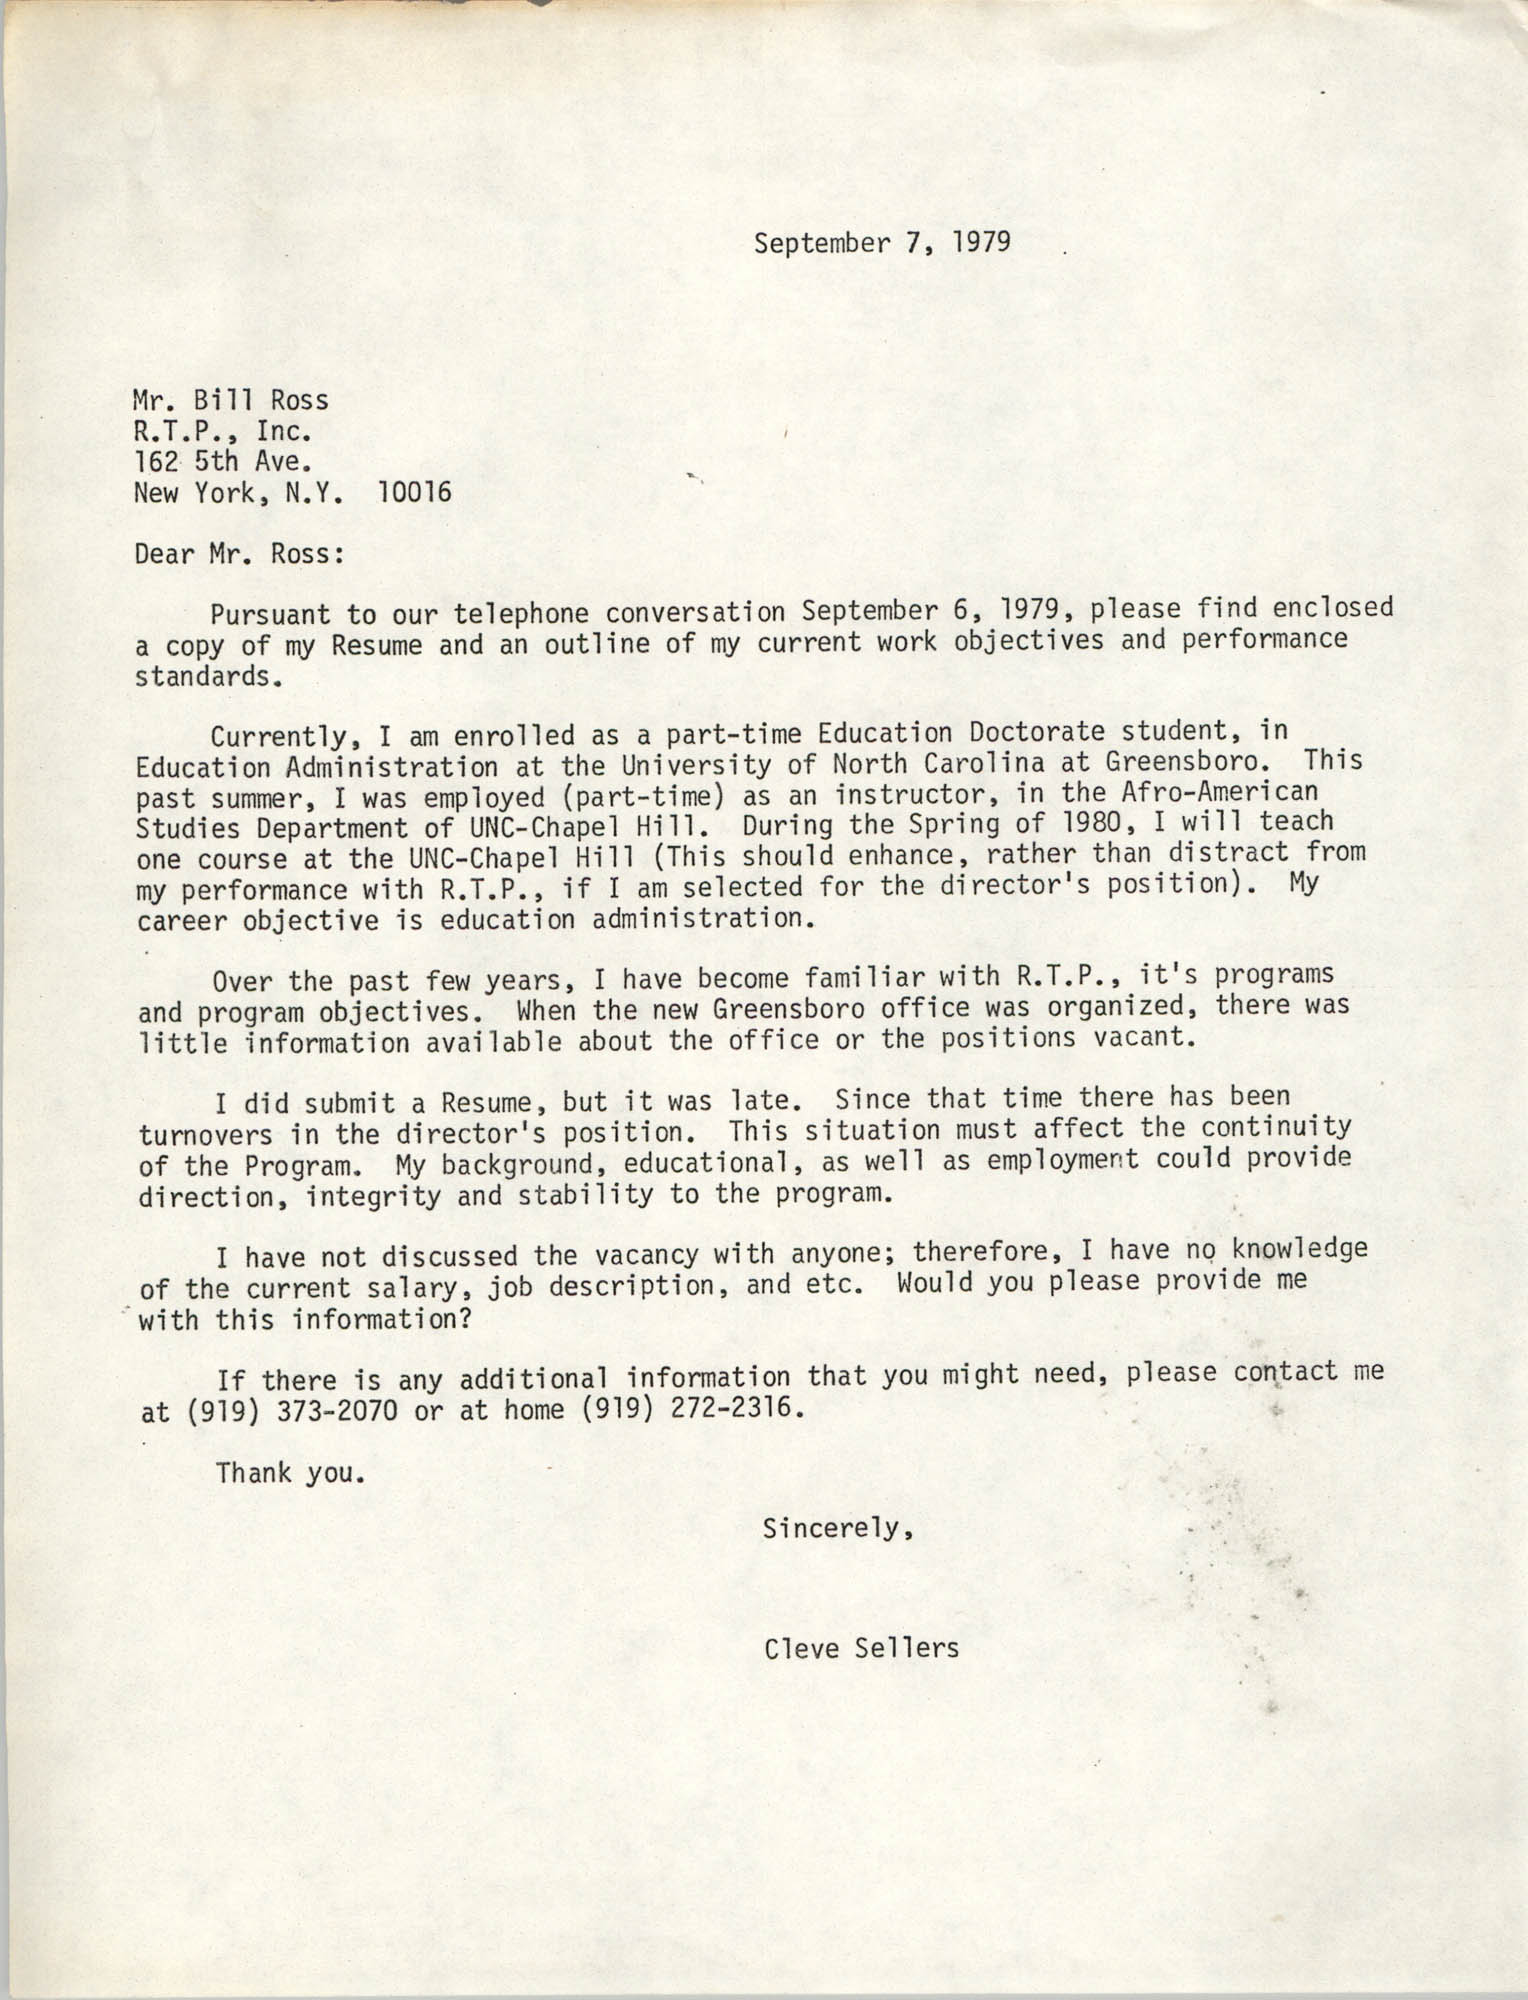 Letter from Cleveland Sellers to Bill Ross, September 7, 1979